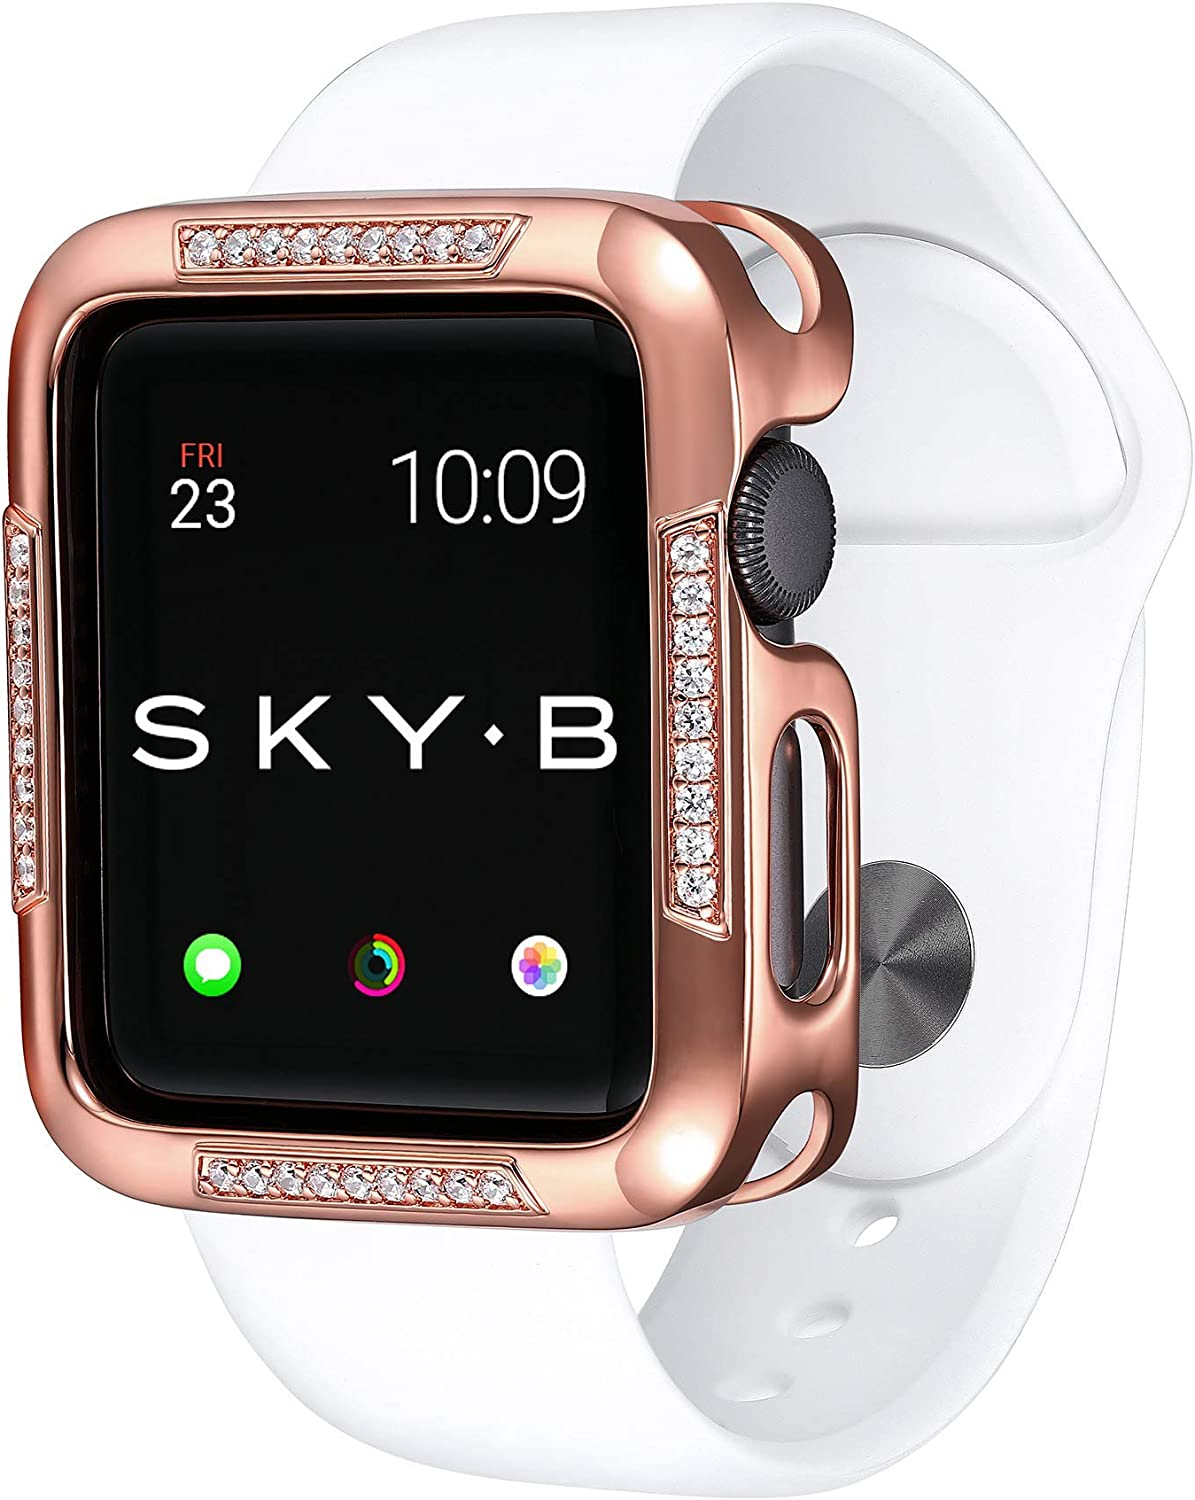 SKYB Runway Rose Gold Protective Jewelry Case for Apple Watch Series 1, 2, 3, 4, 5 Devices - 42mm